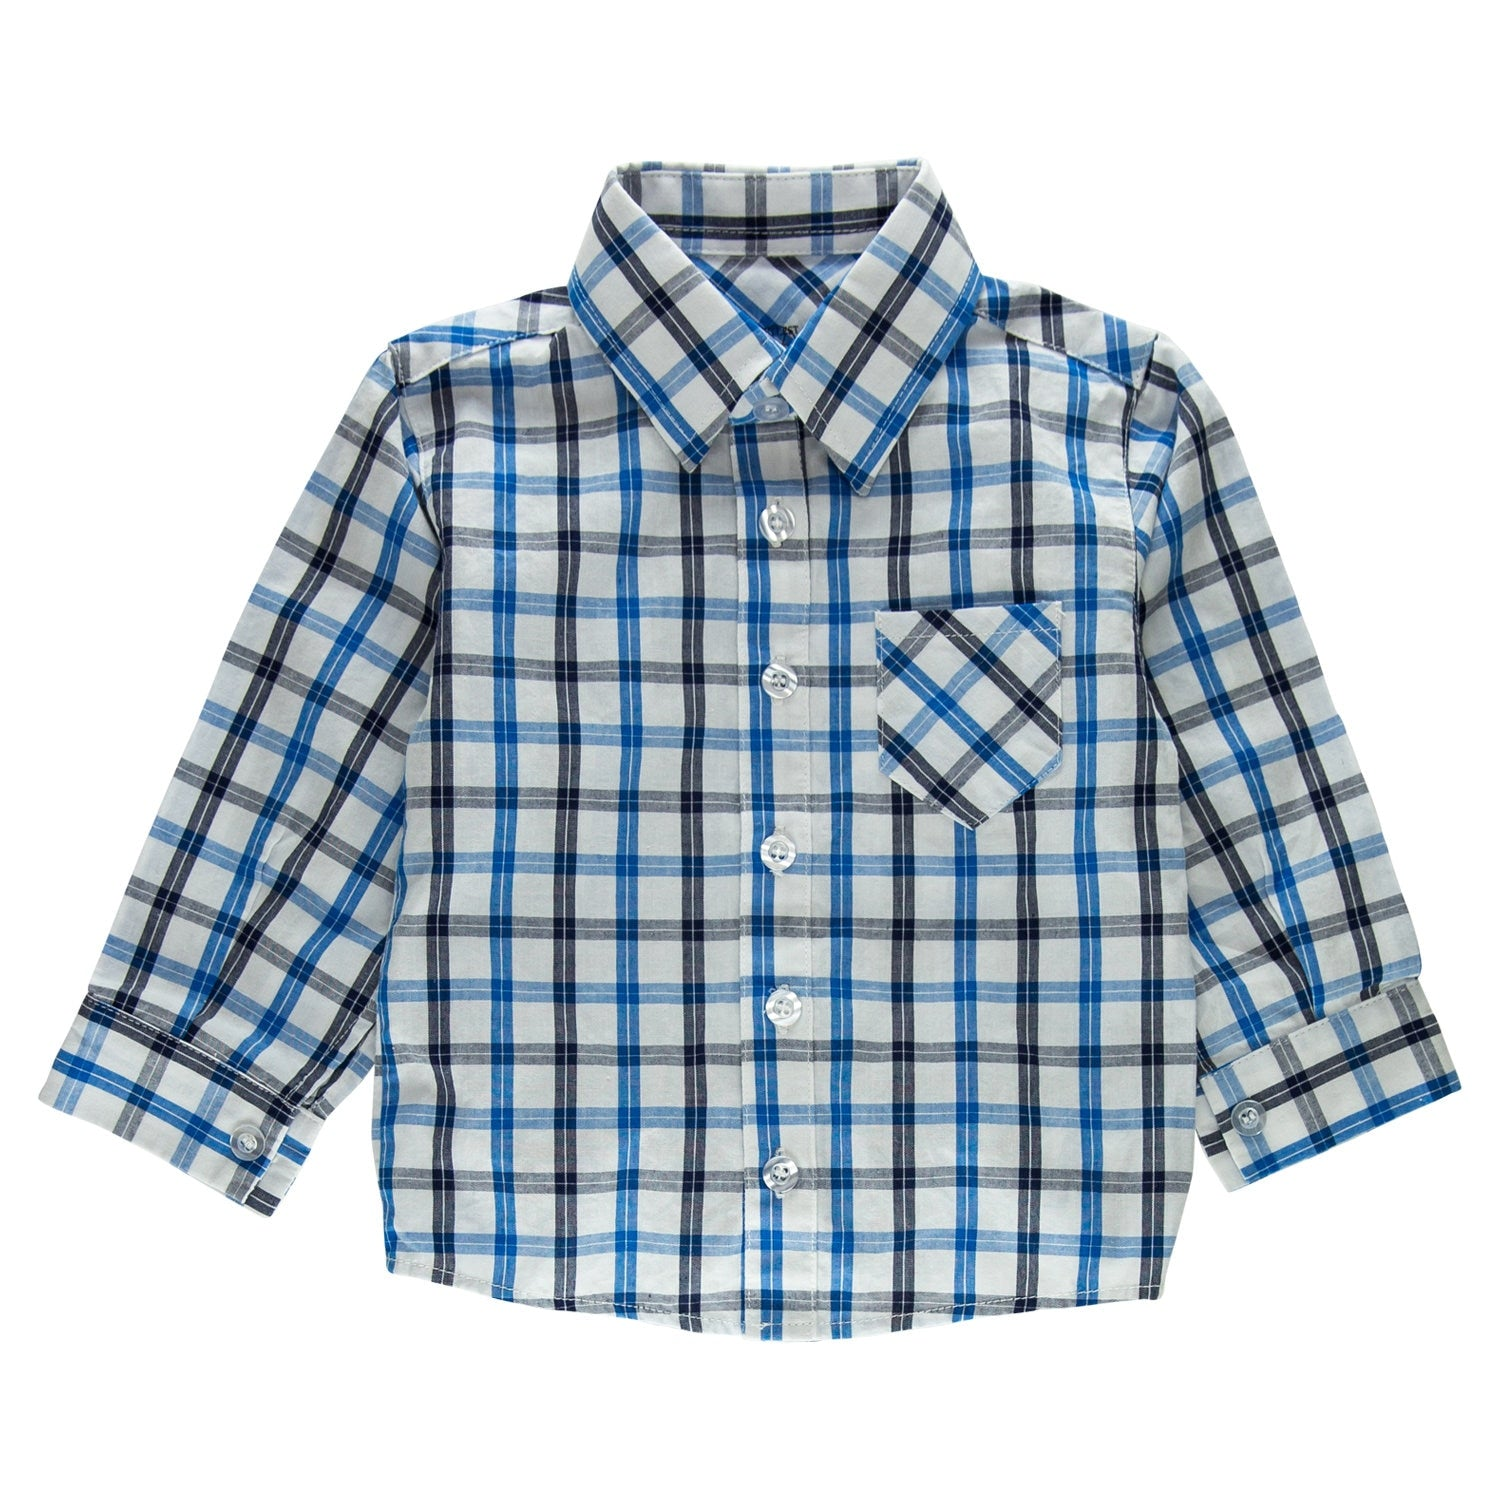 lsdss-blp-blue-plaid-long-sleeve-dress-shirt-front-product.jpg